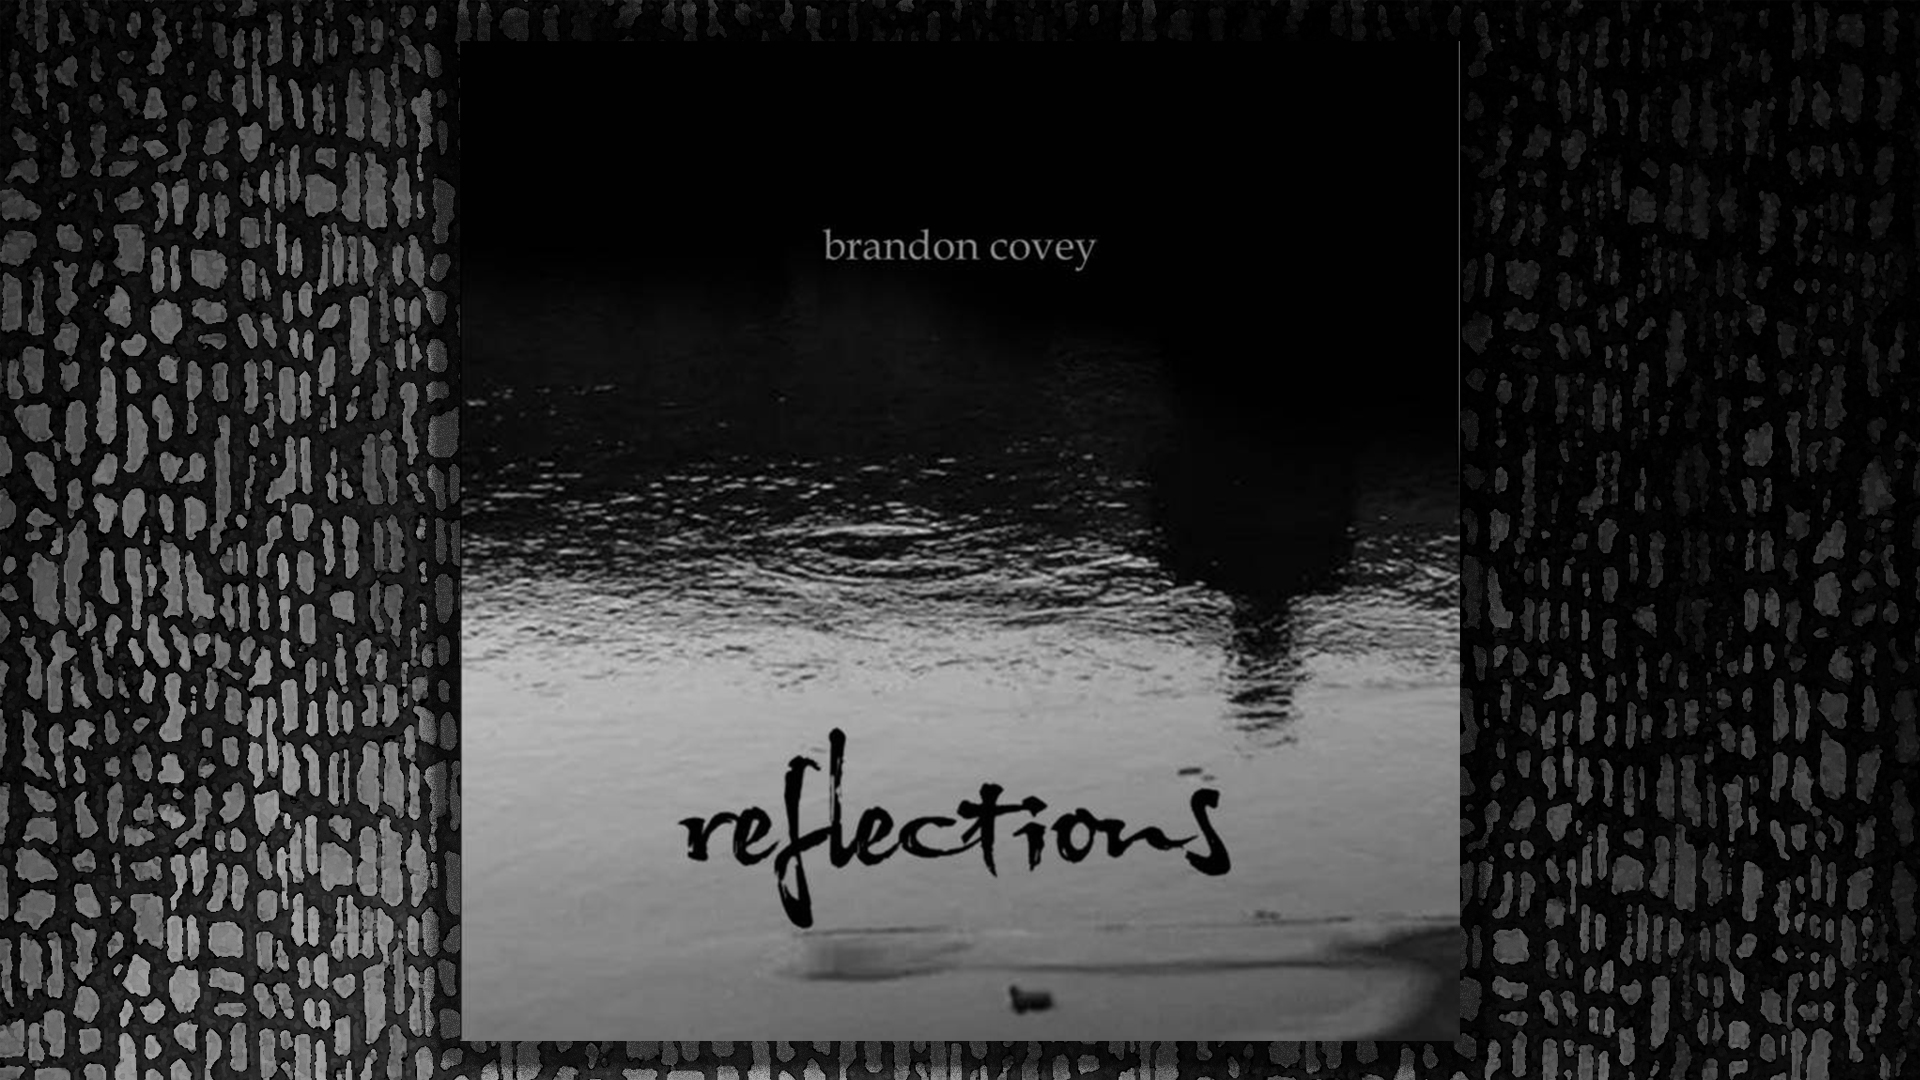 Refections, Brandon Covey